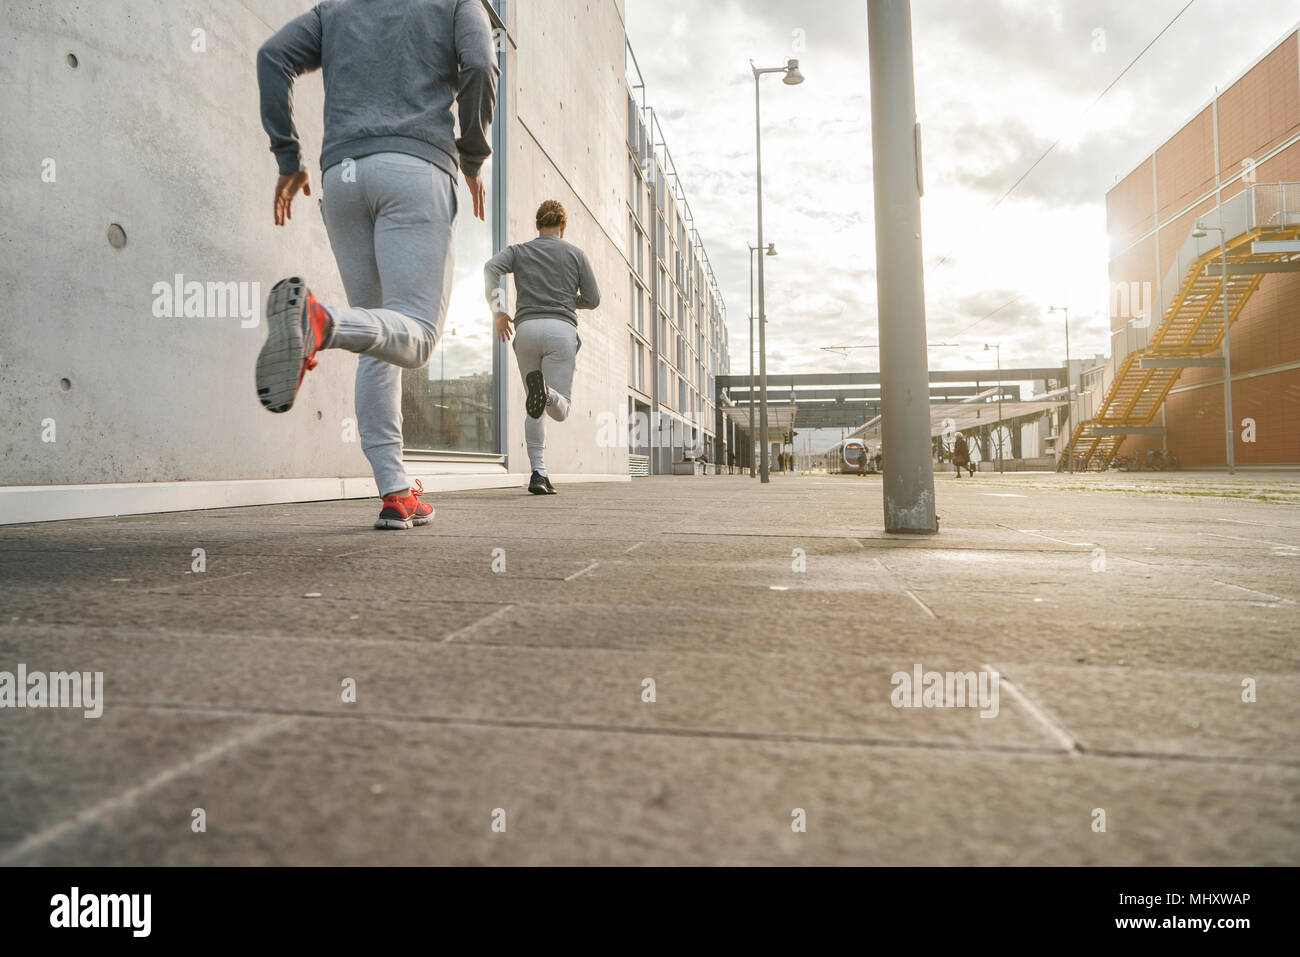 Young adult male twin runners, running along city sidewalk, rear view - Stock Image